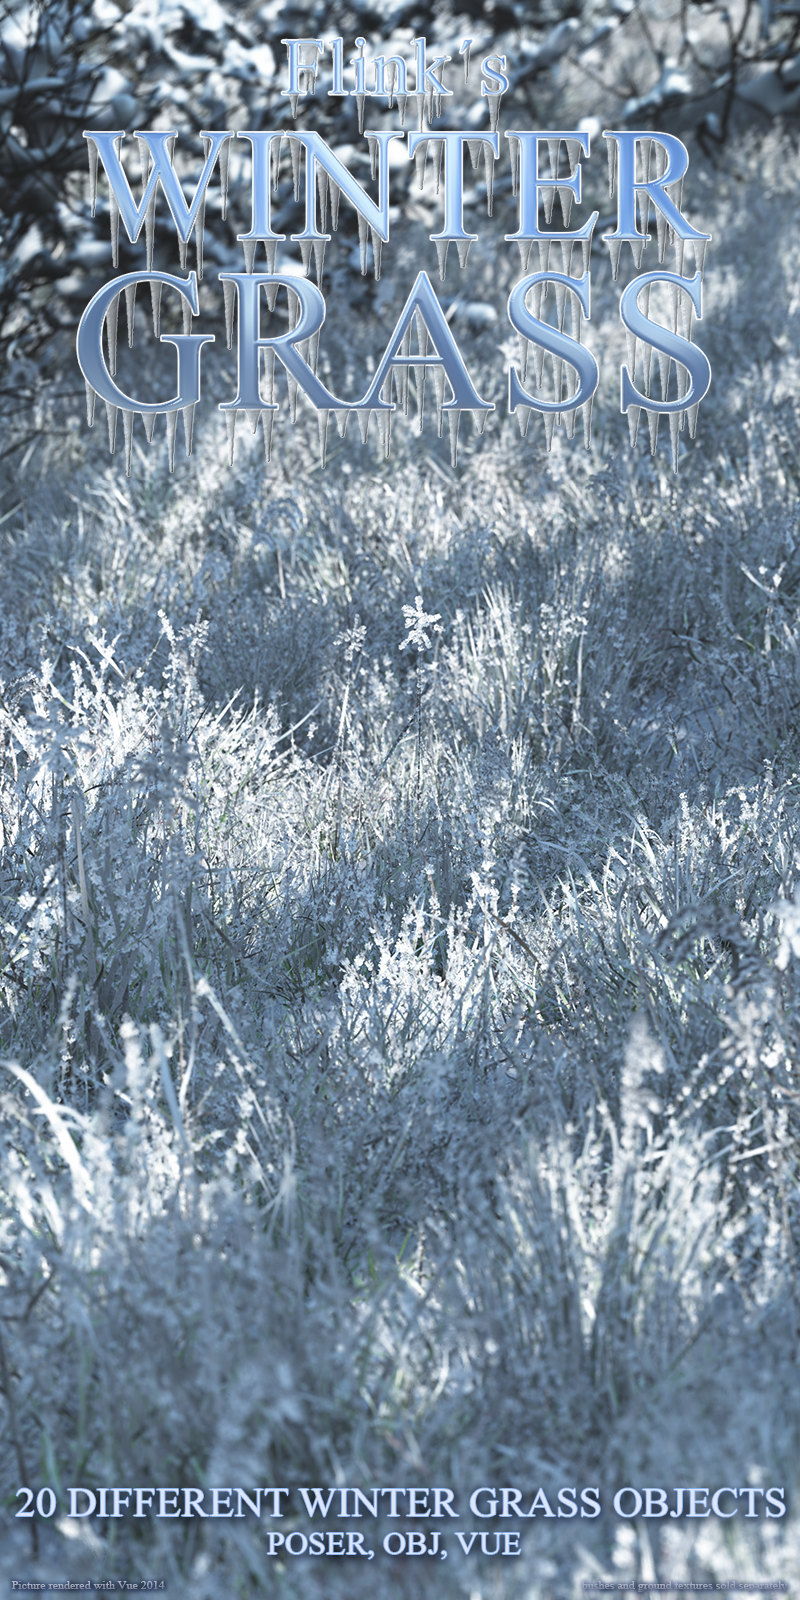 Flinks Winter Grass